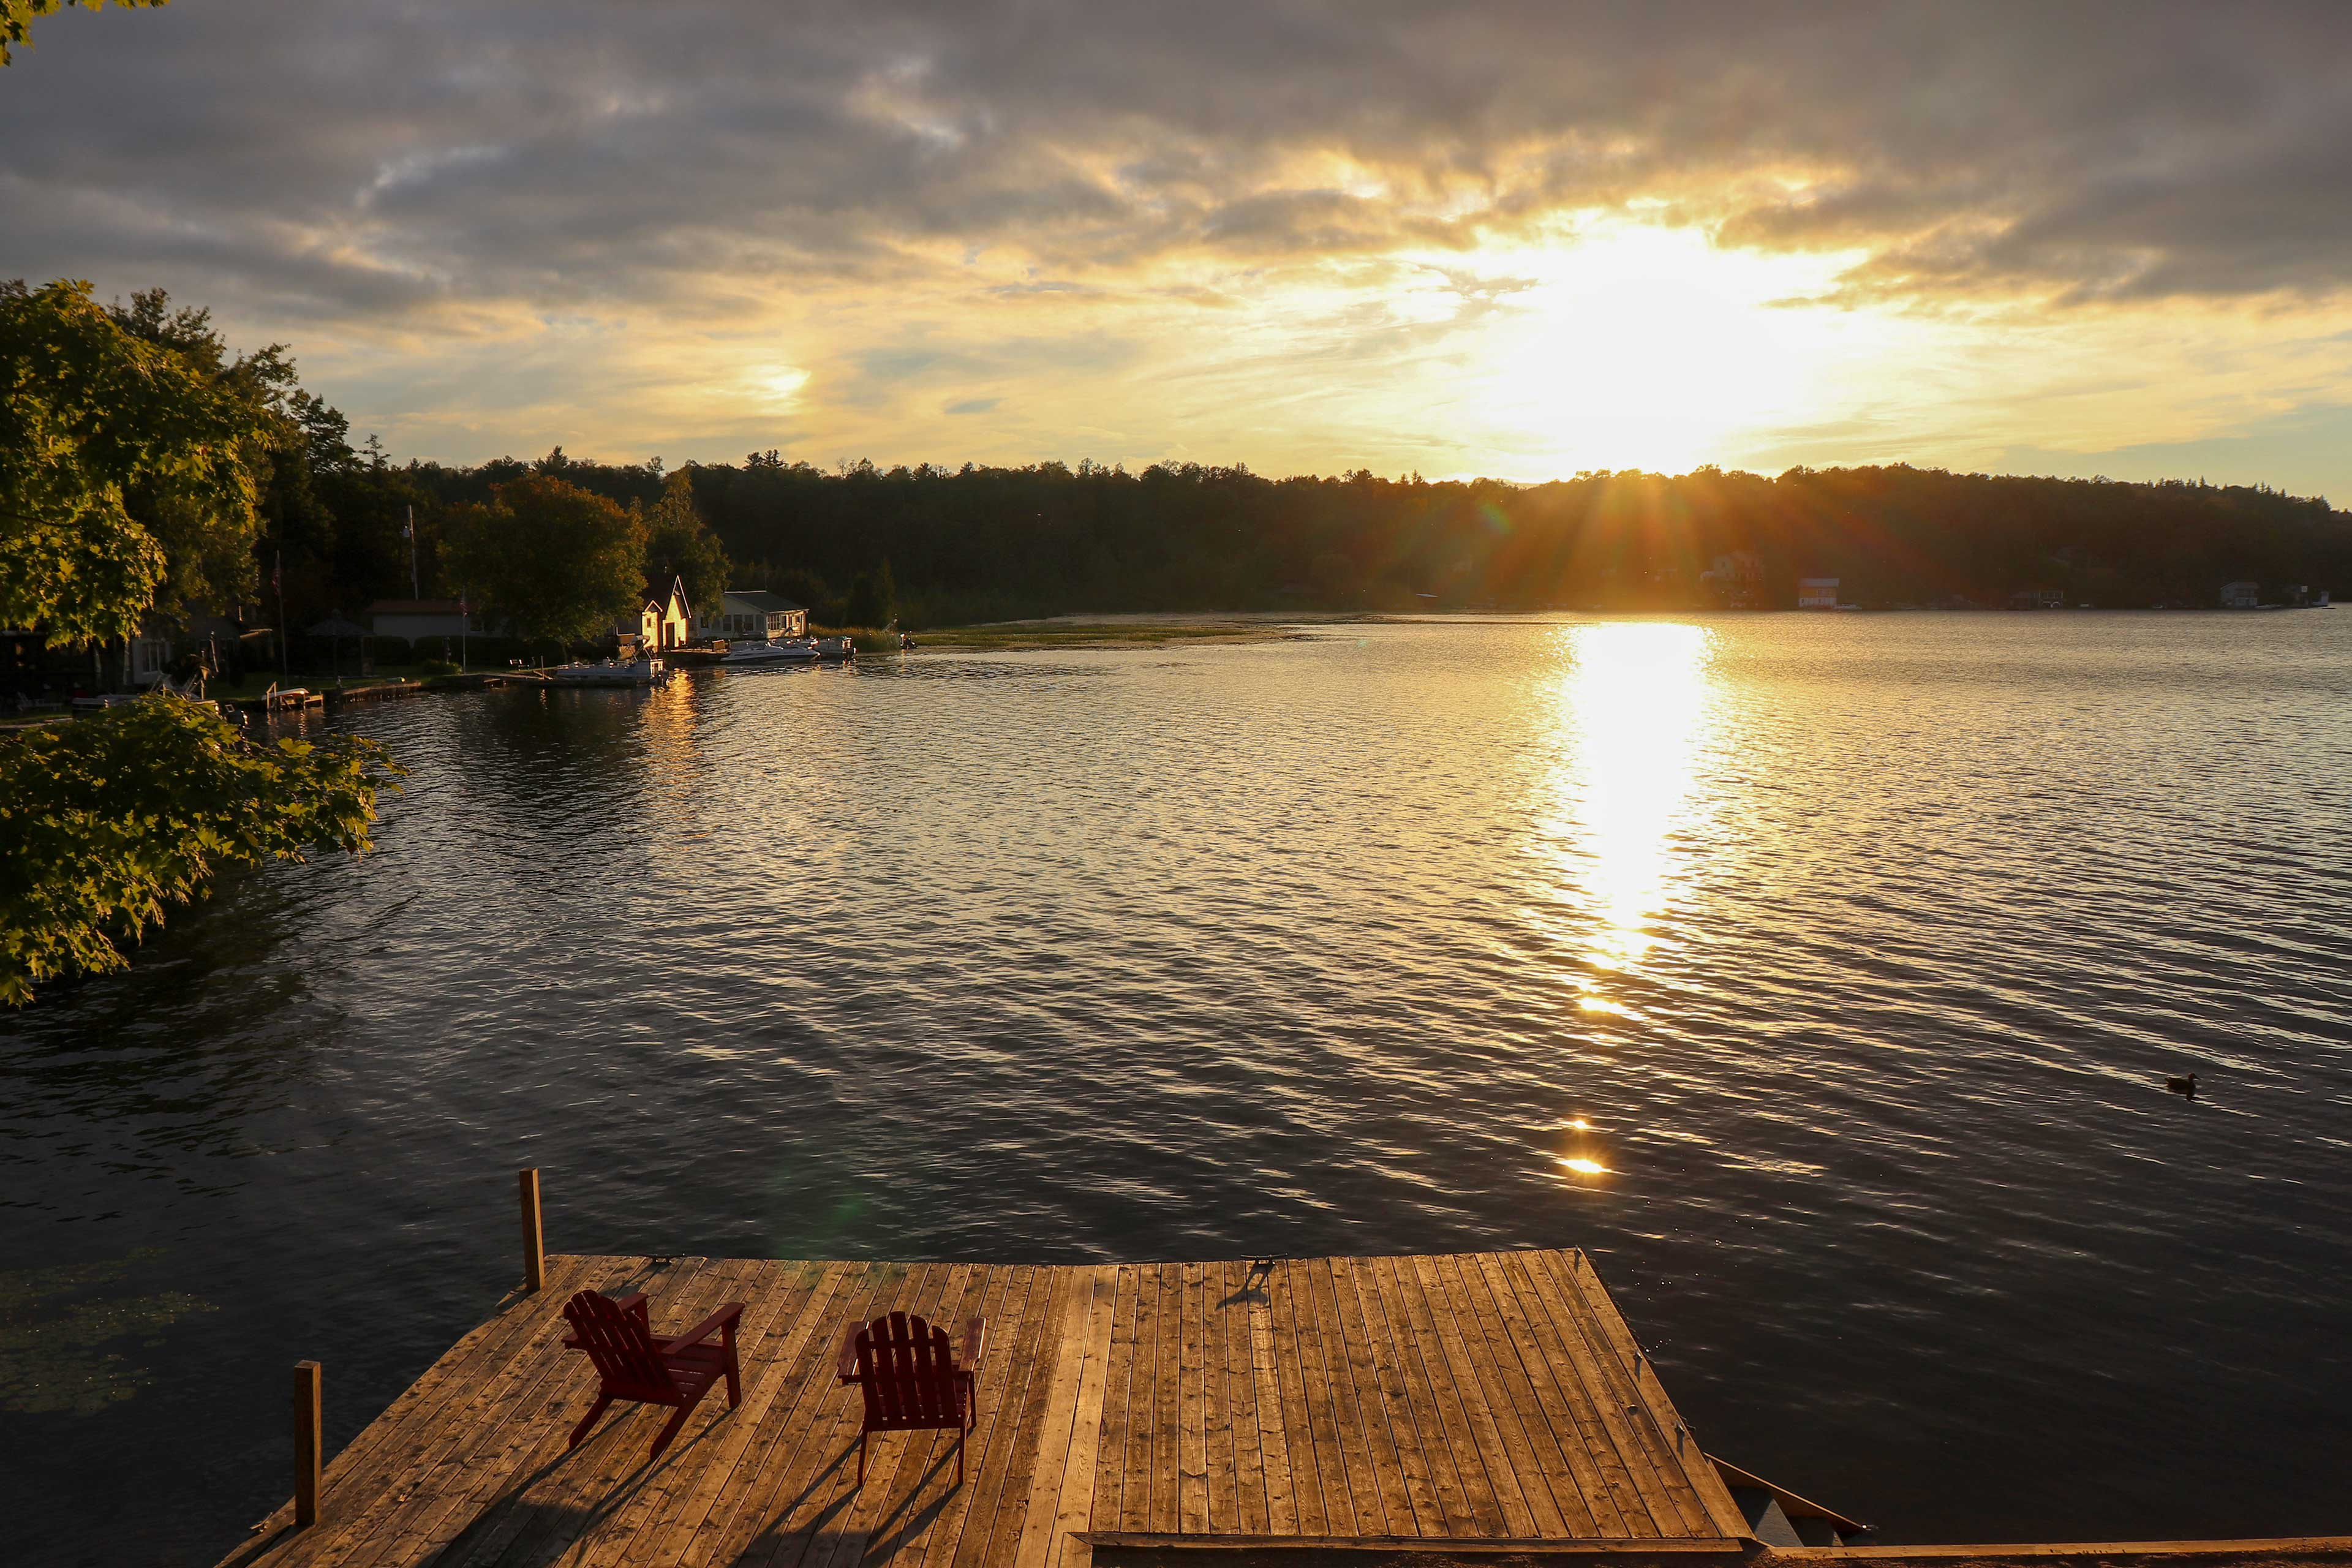 No matter the time of day, the dock is sure to take your breath away.